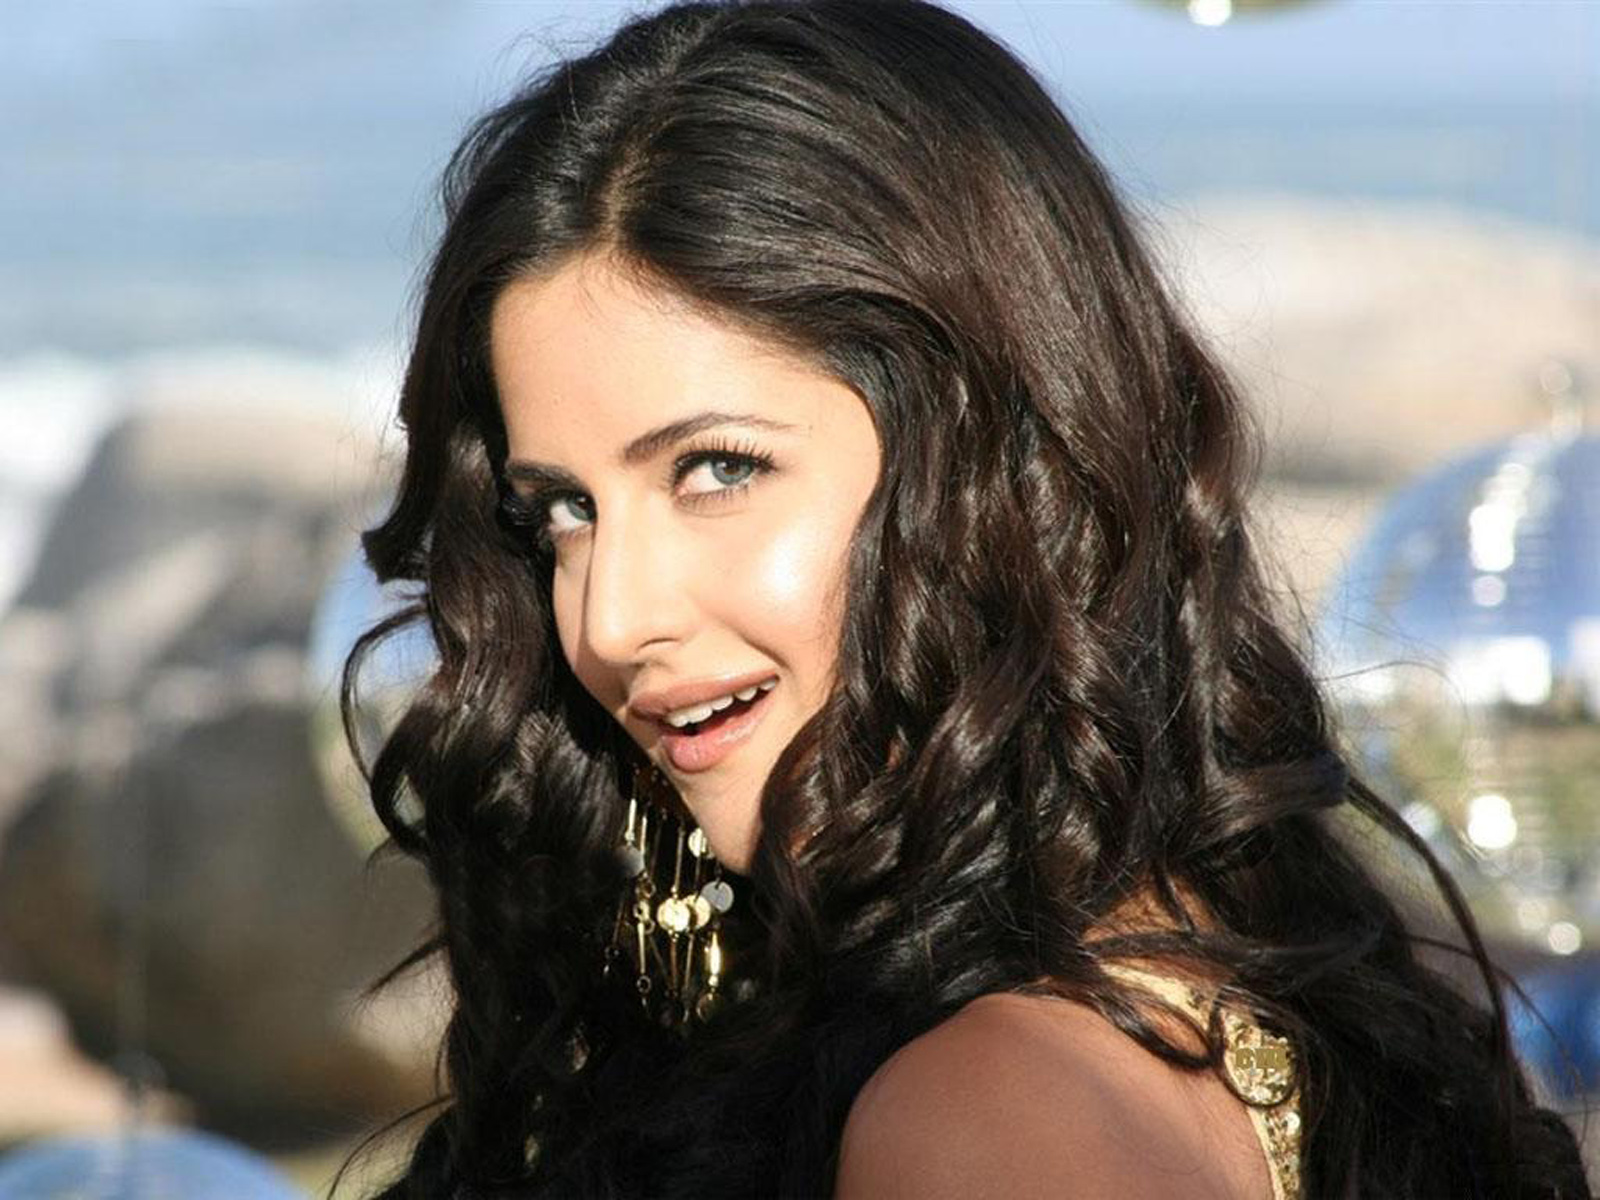 Katrina Kaif Wallpaper 23